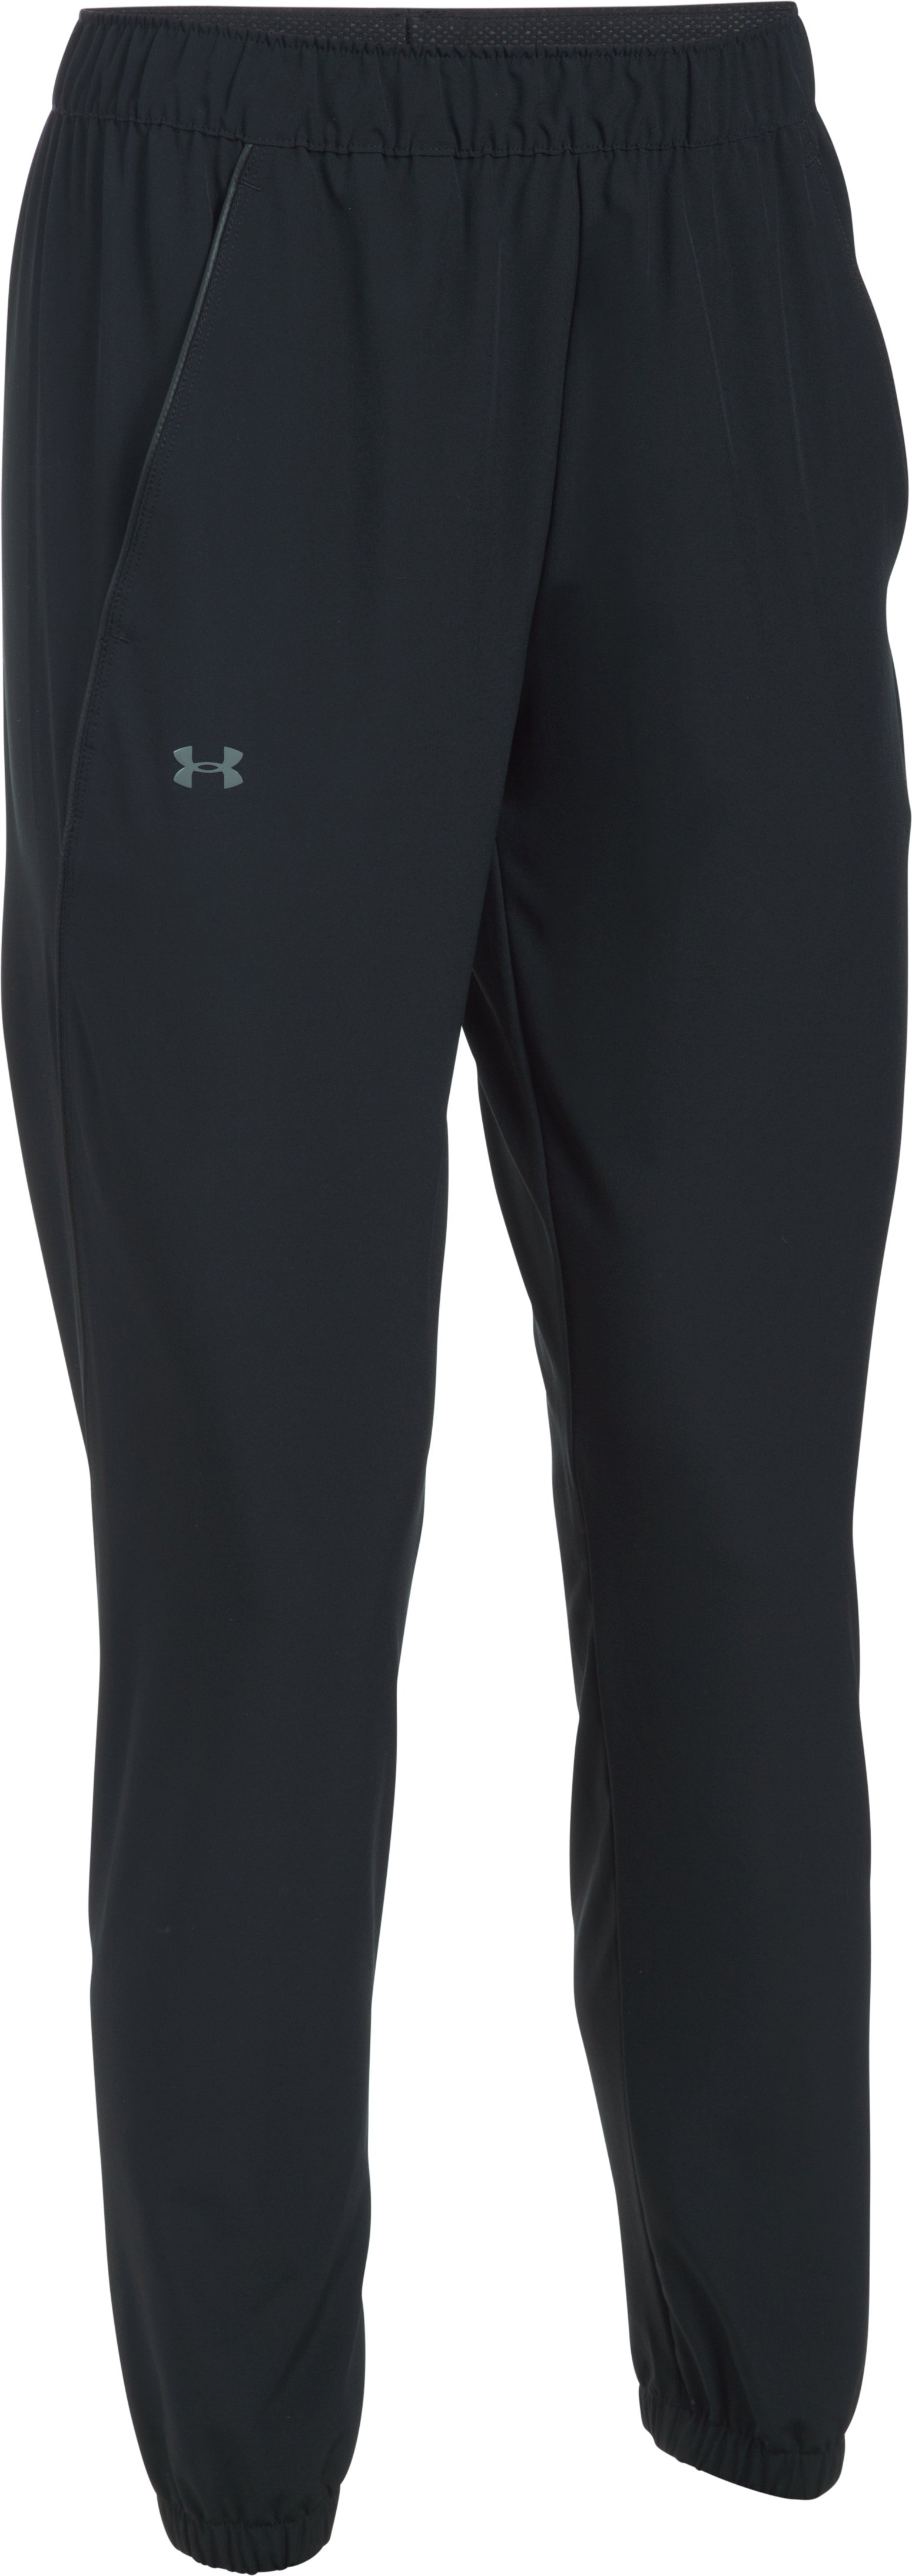 Women's UA Swift Pants, Black